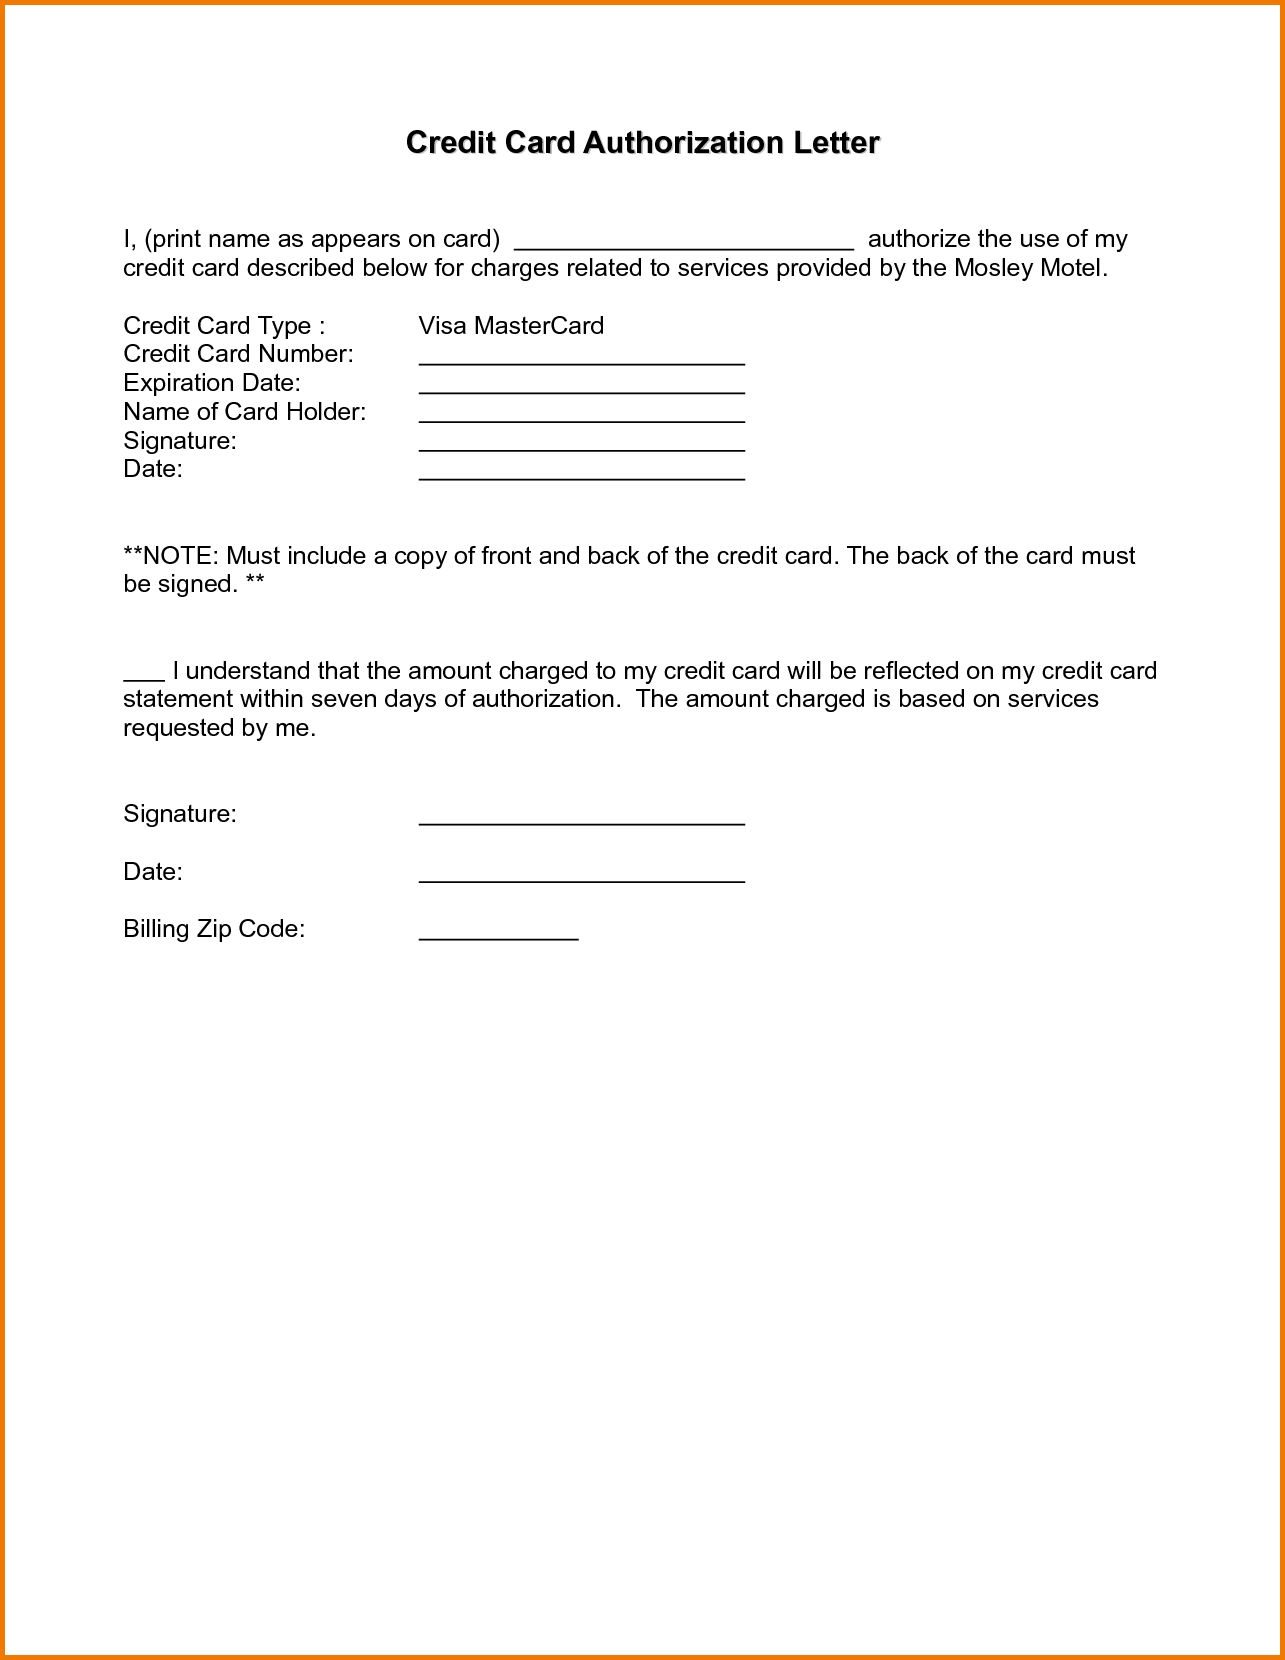 Authorization letter sample authorization letter pdf in